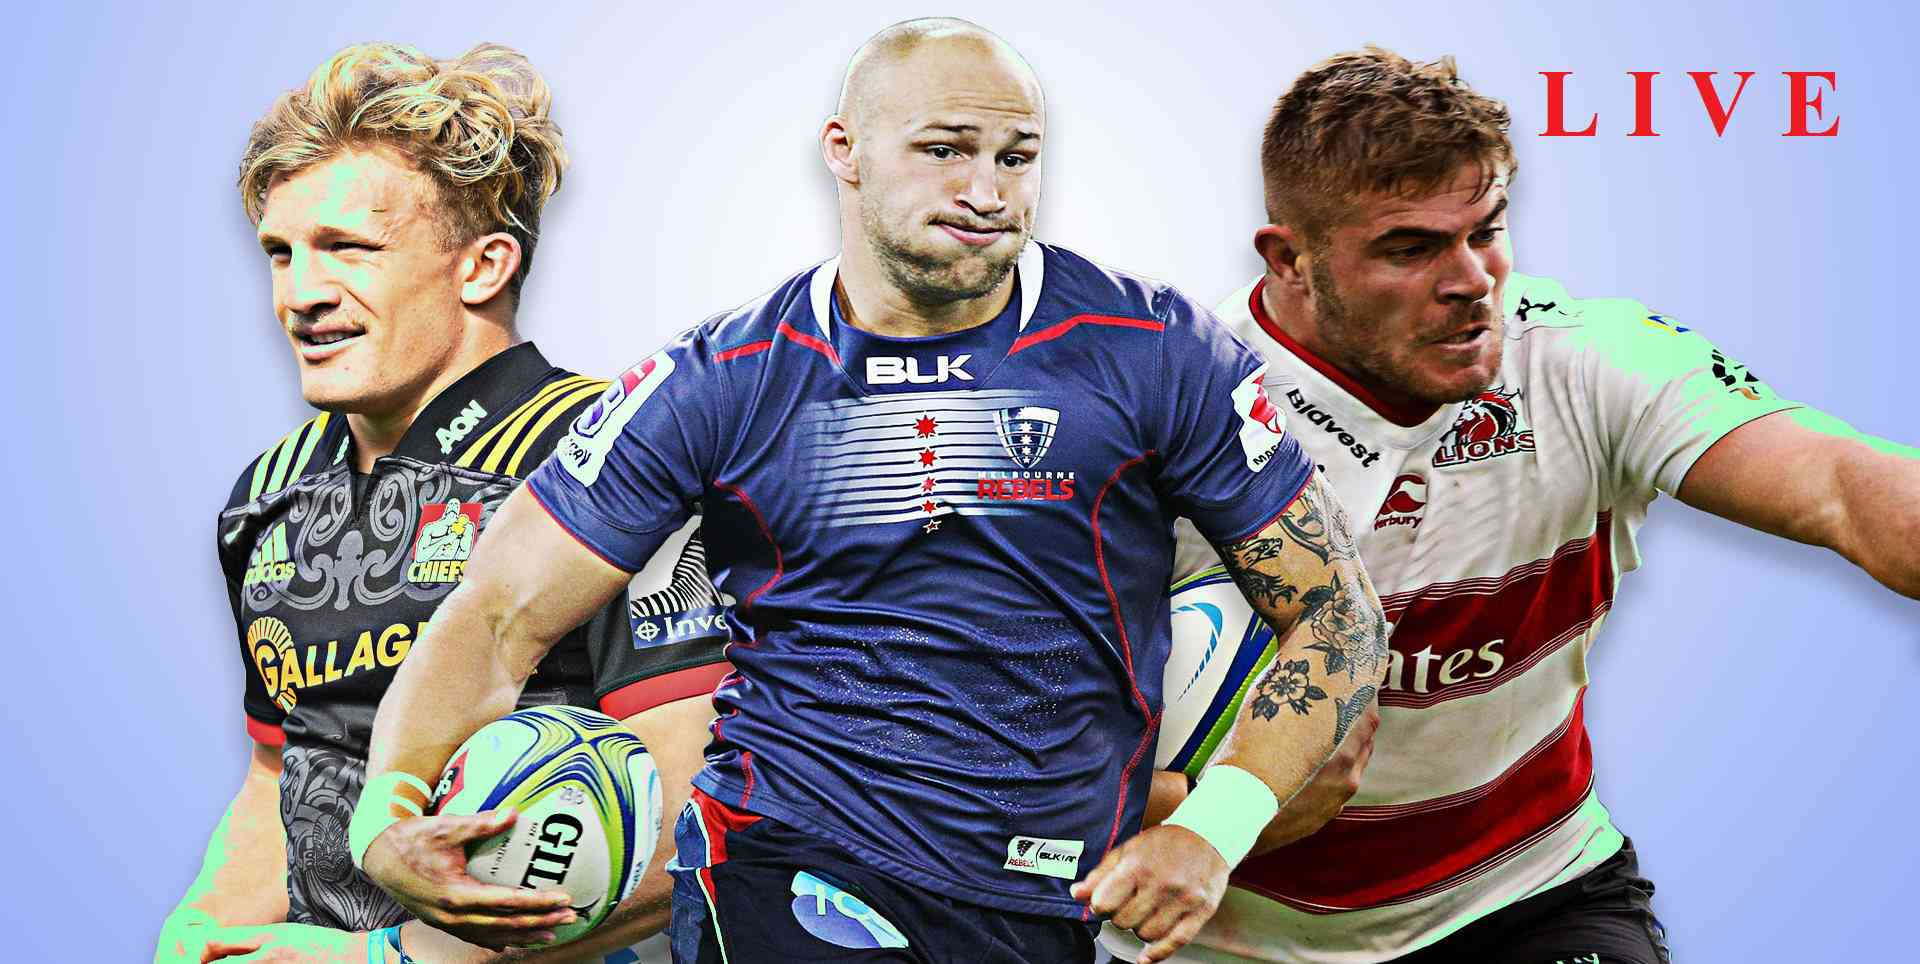 live-chiefs-vs-blues-rugby-stream